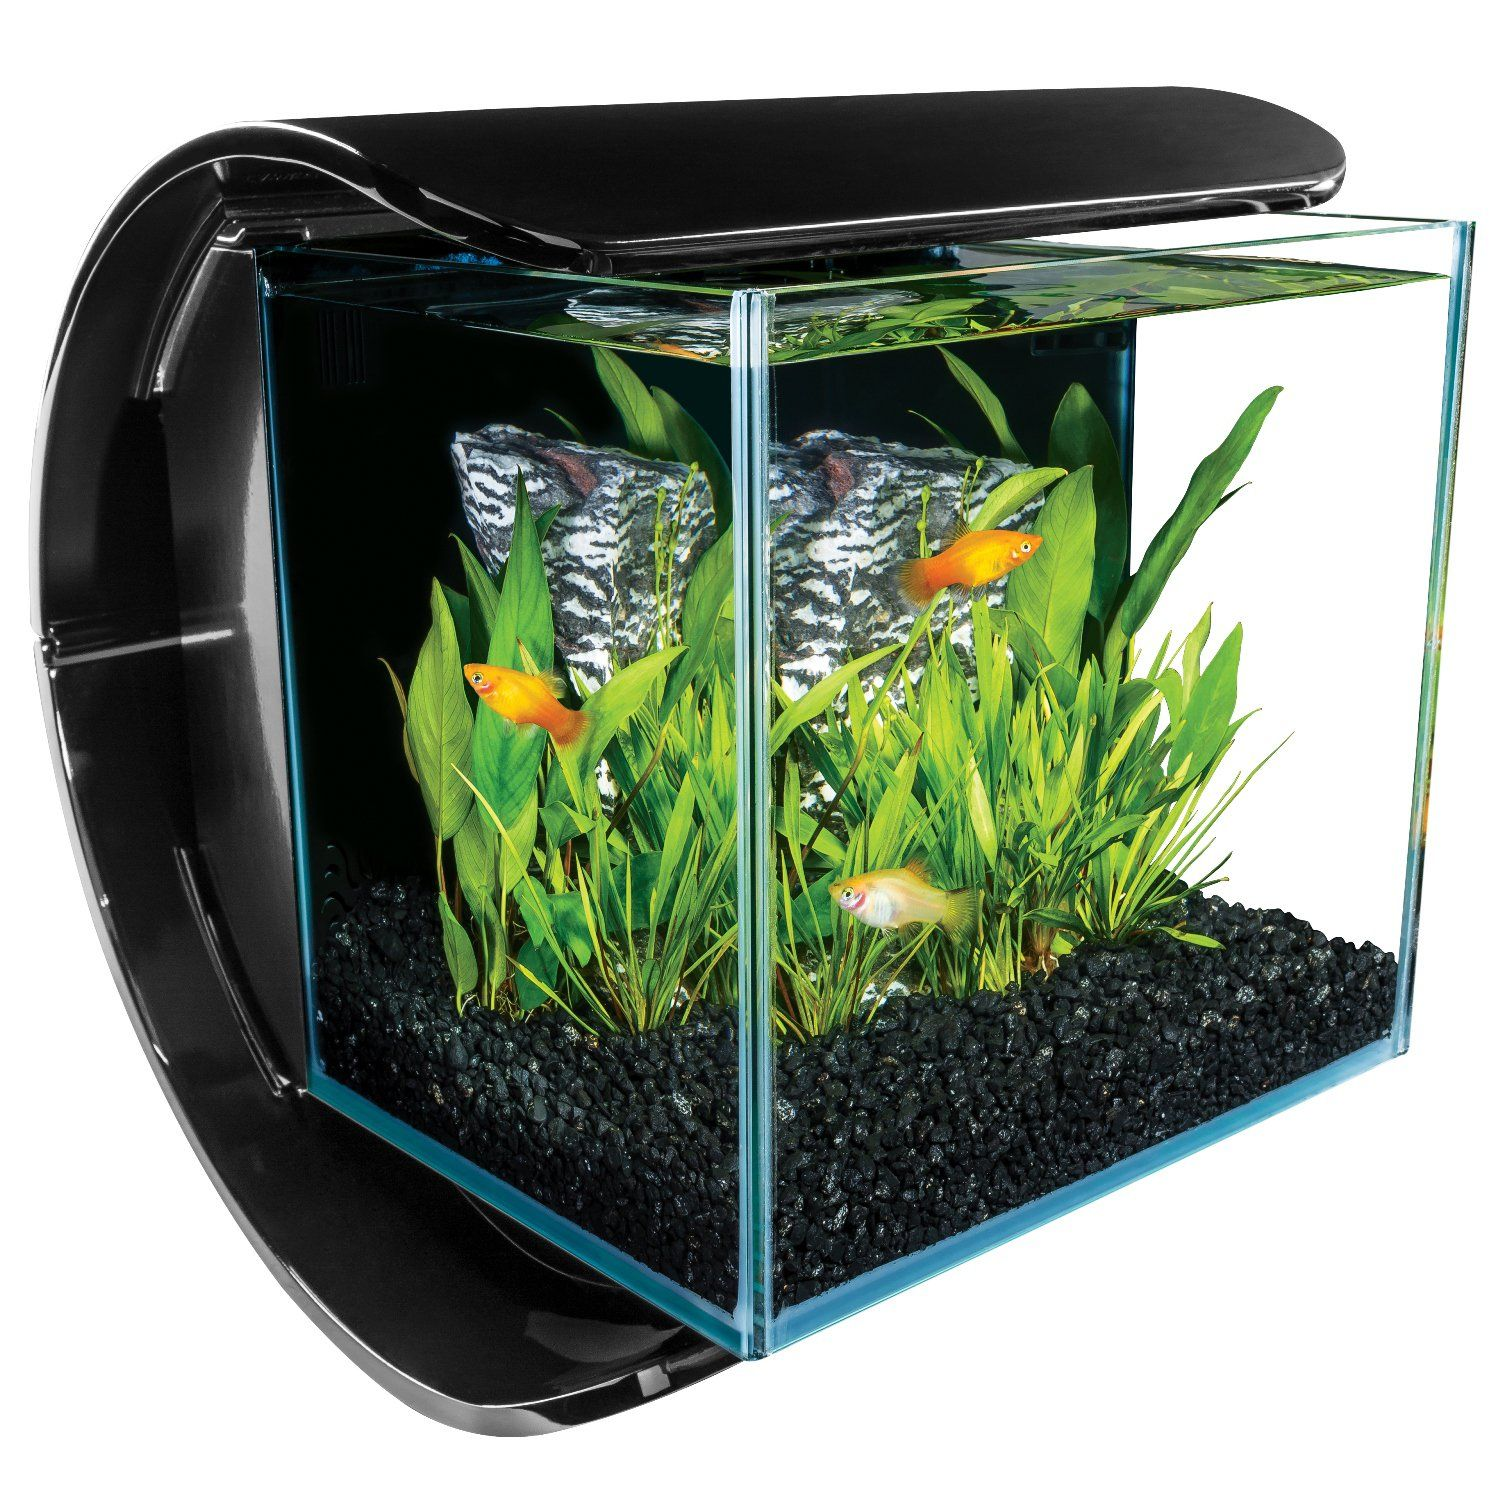 Aquarium fish tank starter kit - The Marineland Silhouette Aquarium Kit Provides A Quick And Stylish Base For Starting Your New Aquarium